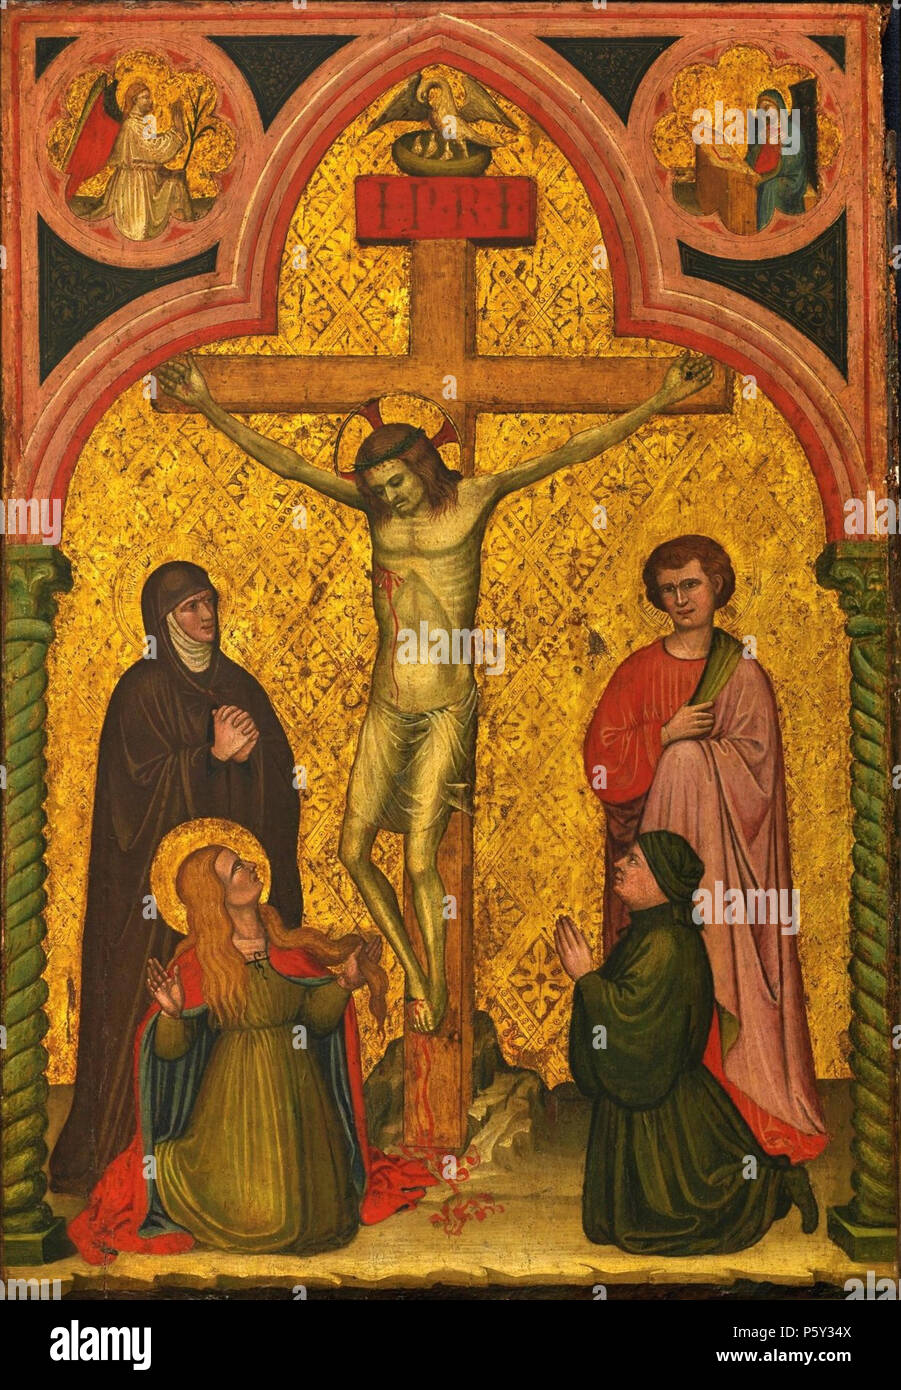 N/A. English: The Crucifixion with Saints Mary, John and Mary Magdelene and a Donor; The Annunciation in the Spandrels above by Antonio di Pietro, tempera on panel, gold ground, 76.5 by 52.5cm. between circa 1405 and circa 1434. Antonio di Pietro 392 Crucifixion with Saints Mary, John and Mary Magdelene by Antonio di Pietro - Stock Image